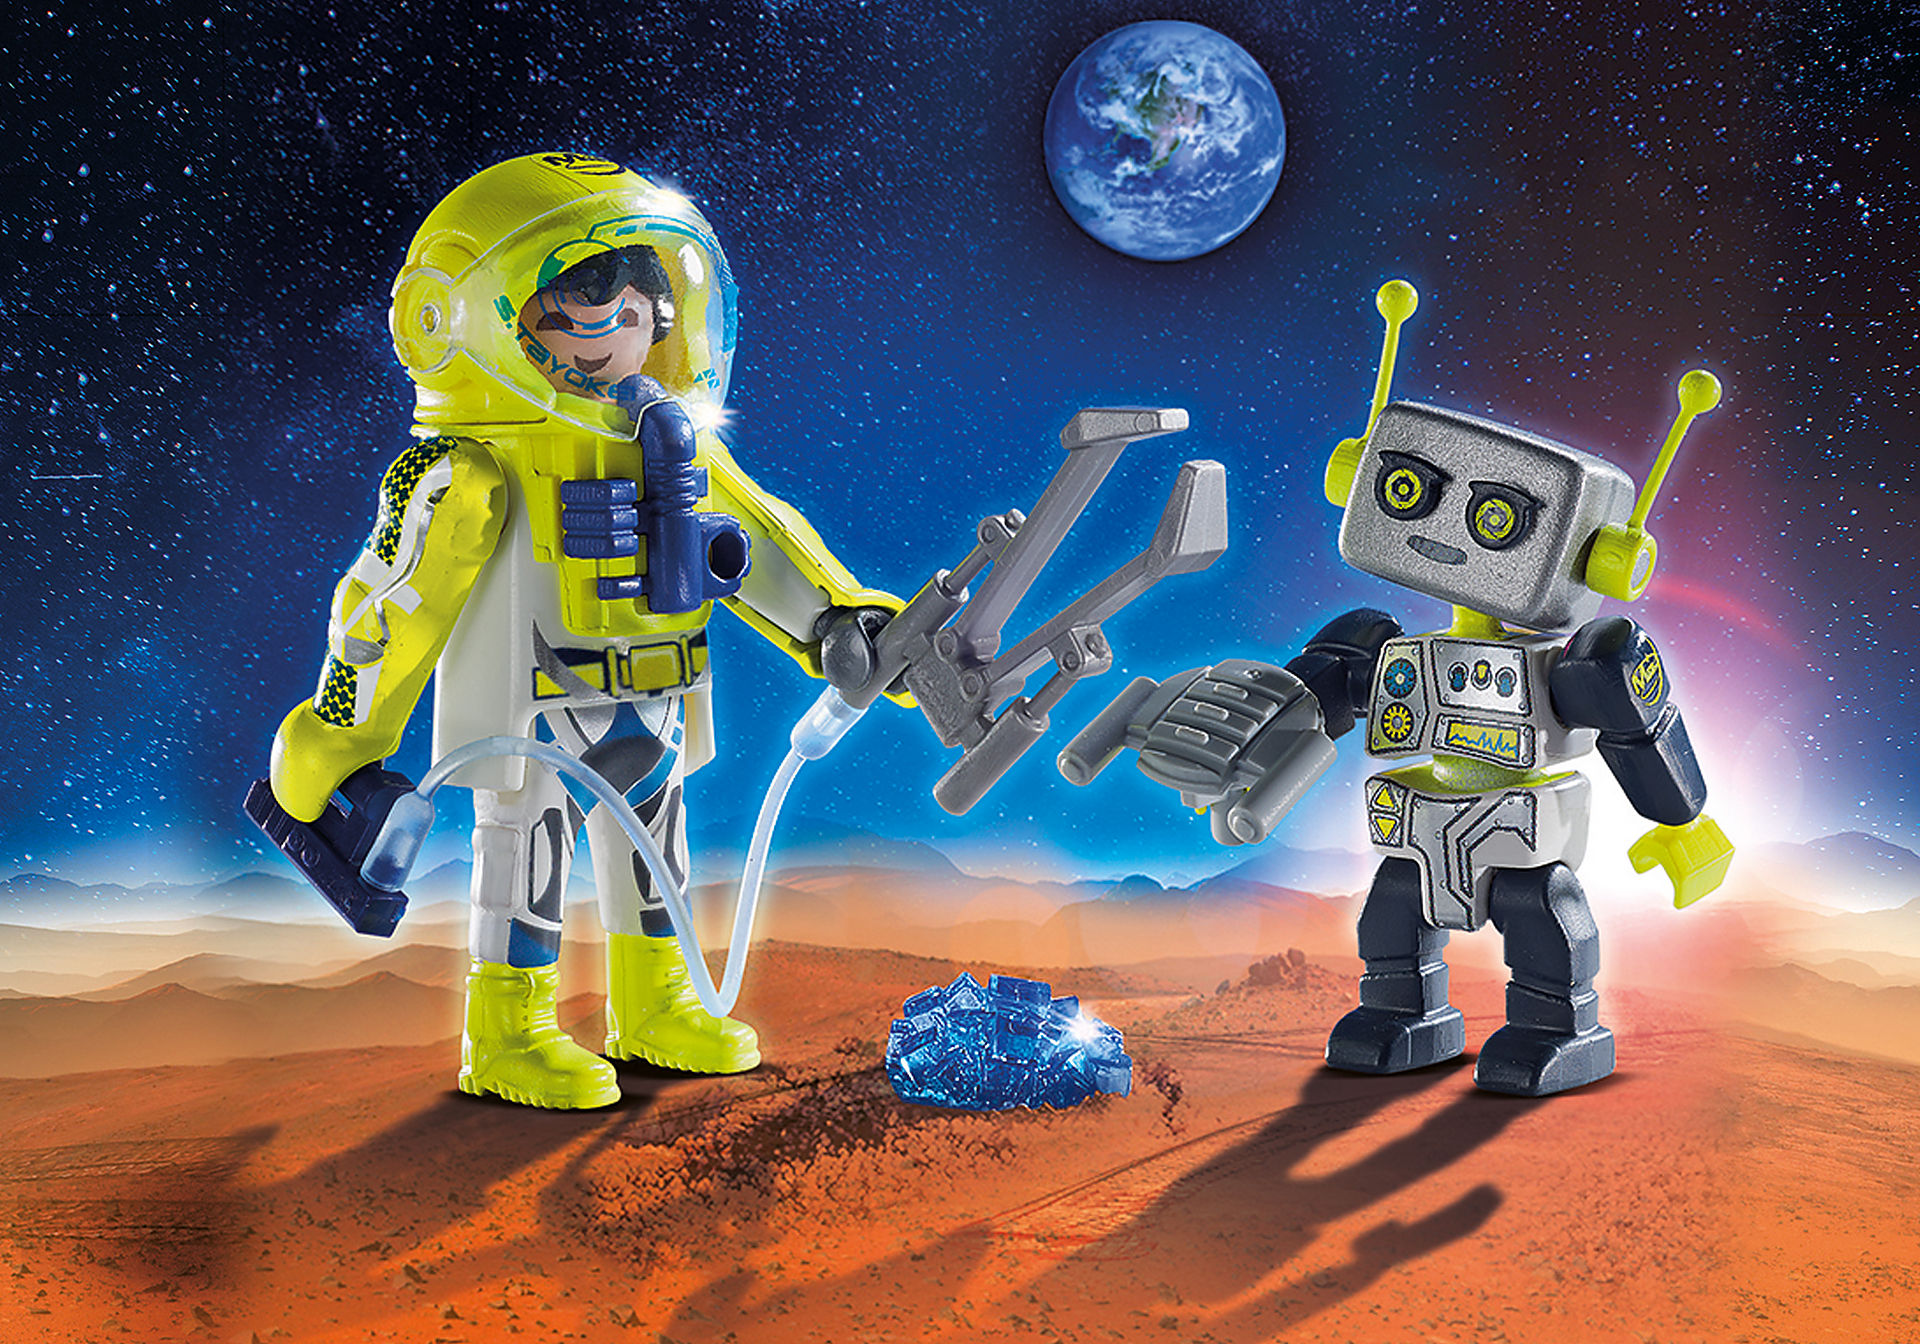 9492 Astronaut and Robot Duo Pack zoom image1